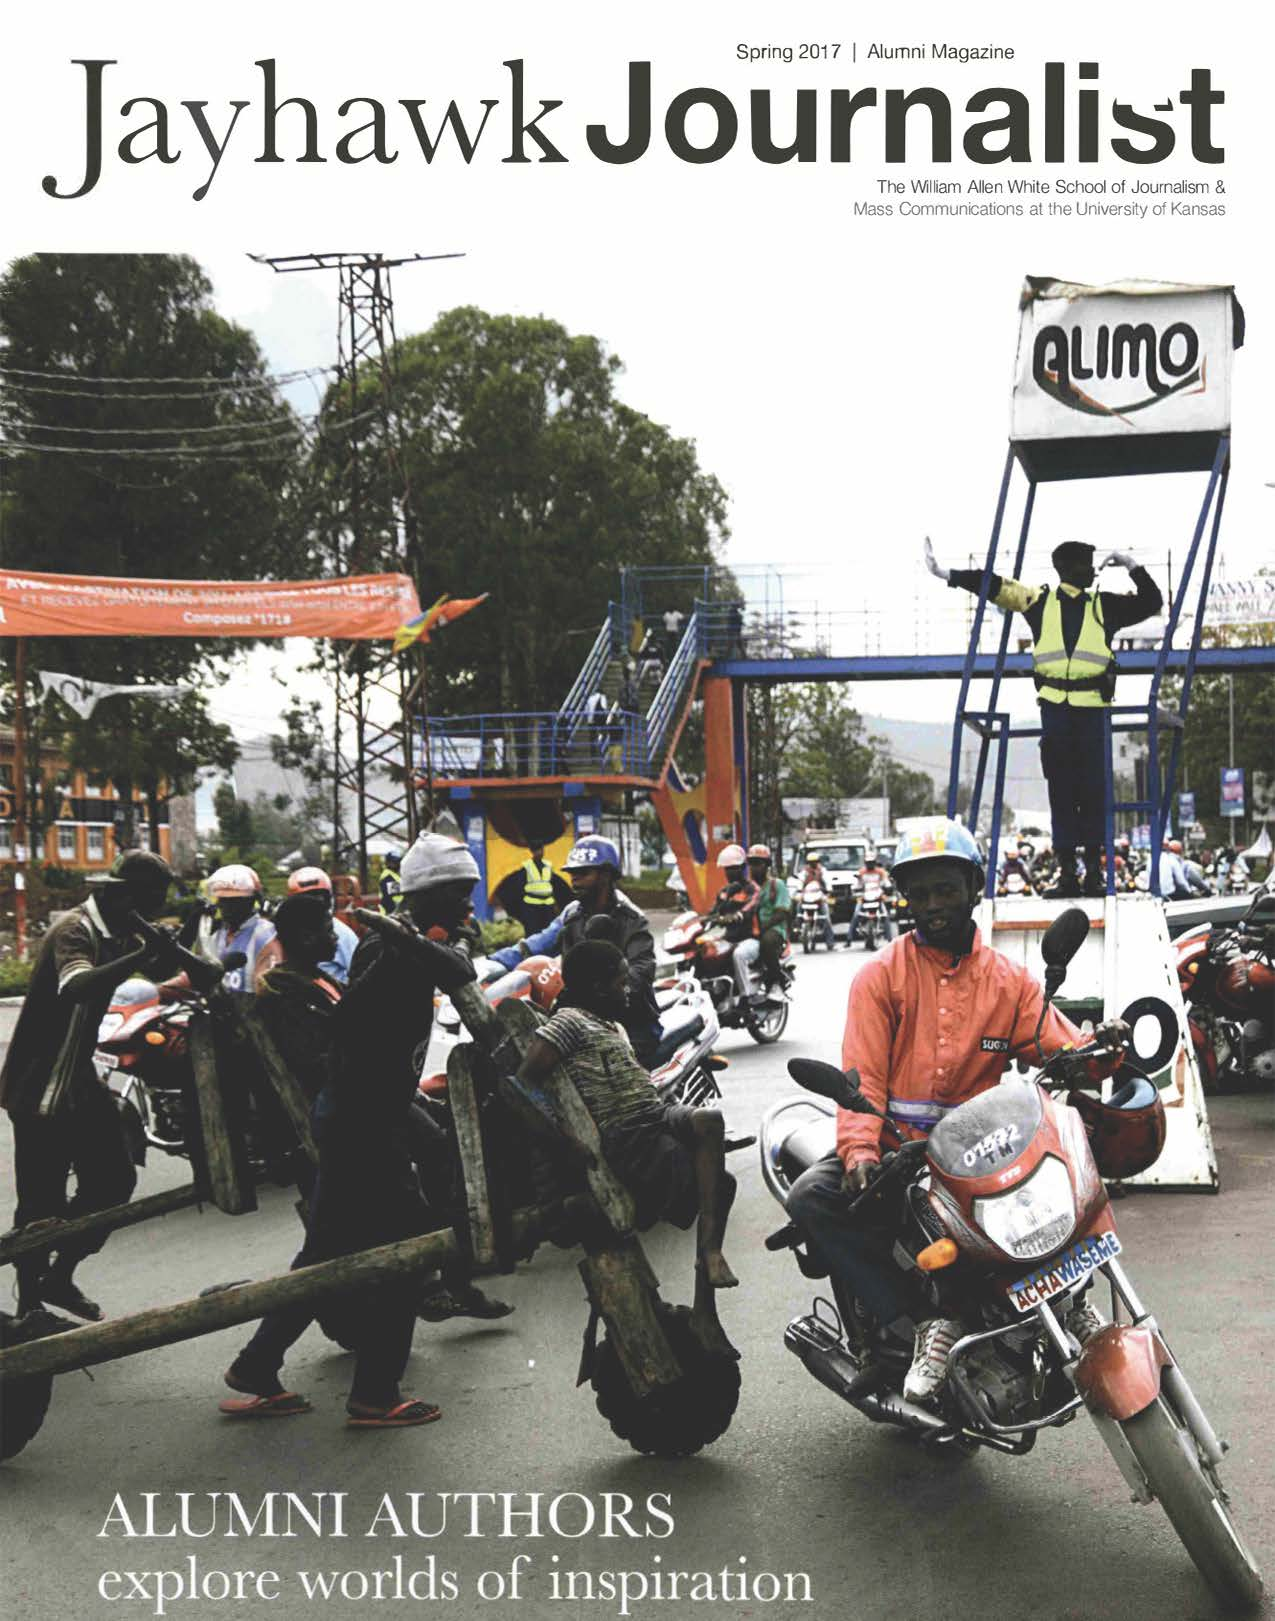 Jayhawk Journalist cover-Street life in Goma, Democratic Republic of the Congo